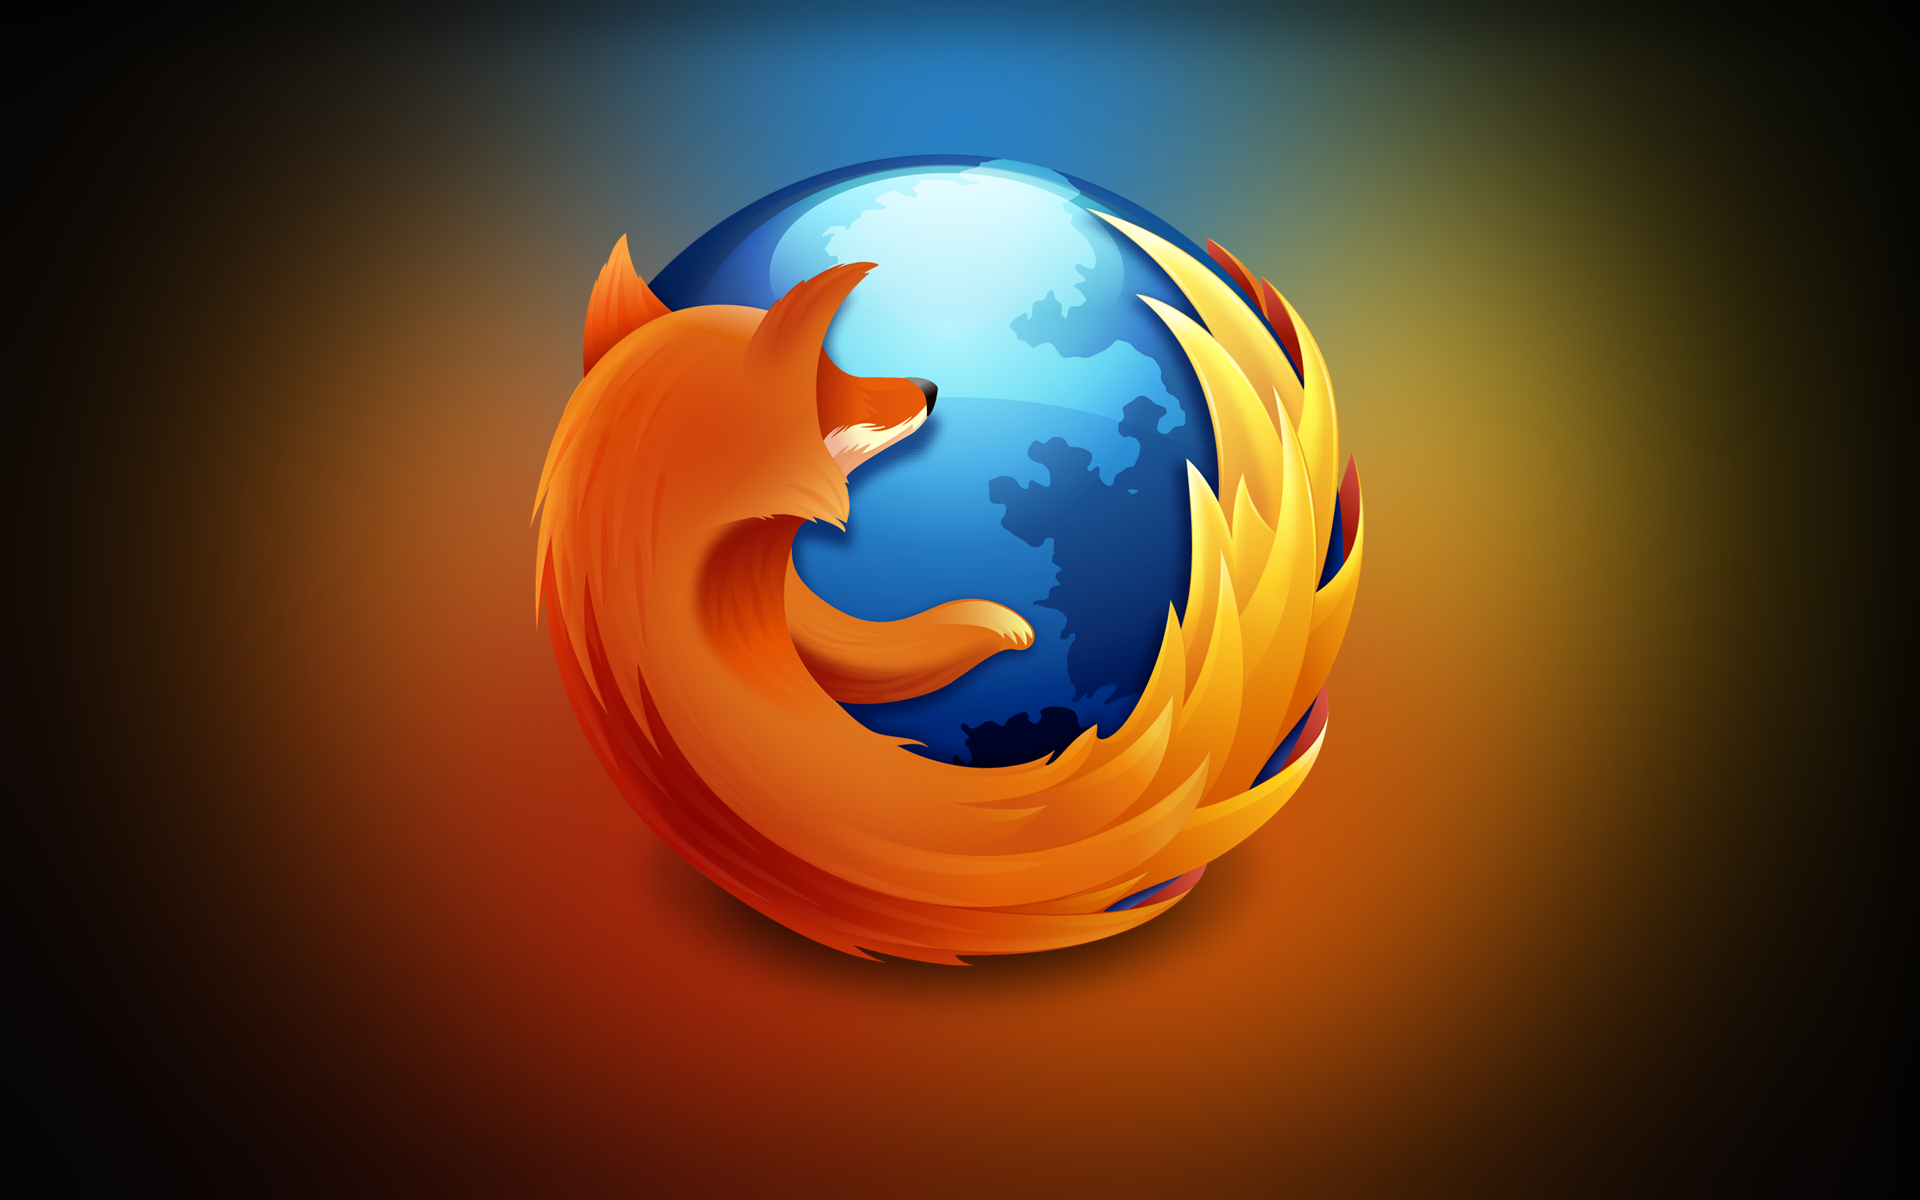 How to add magnet support to Firefox - This allows you to assign a bittorrent client for all magnet links.